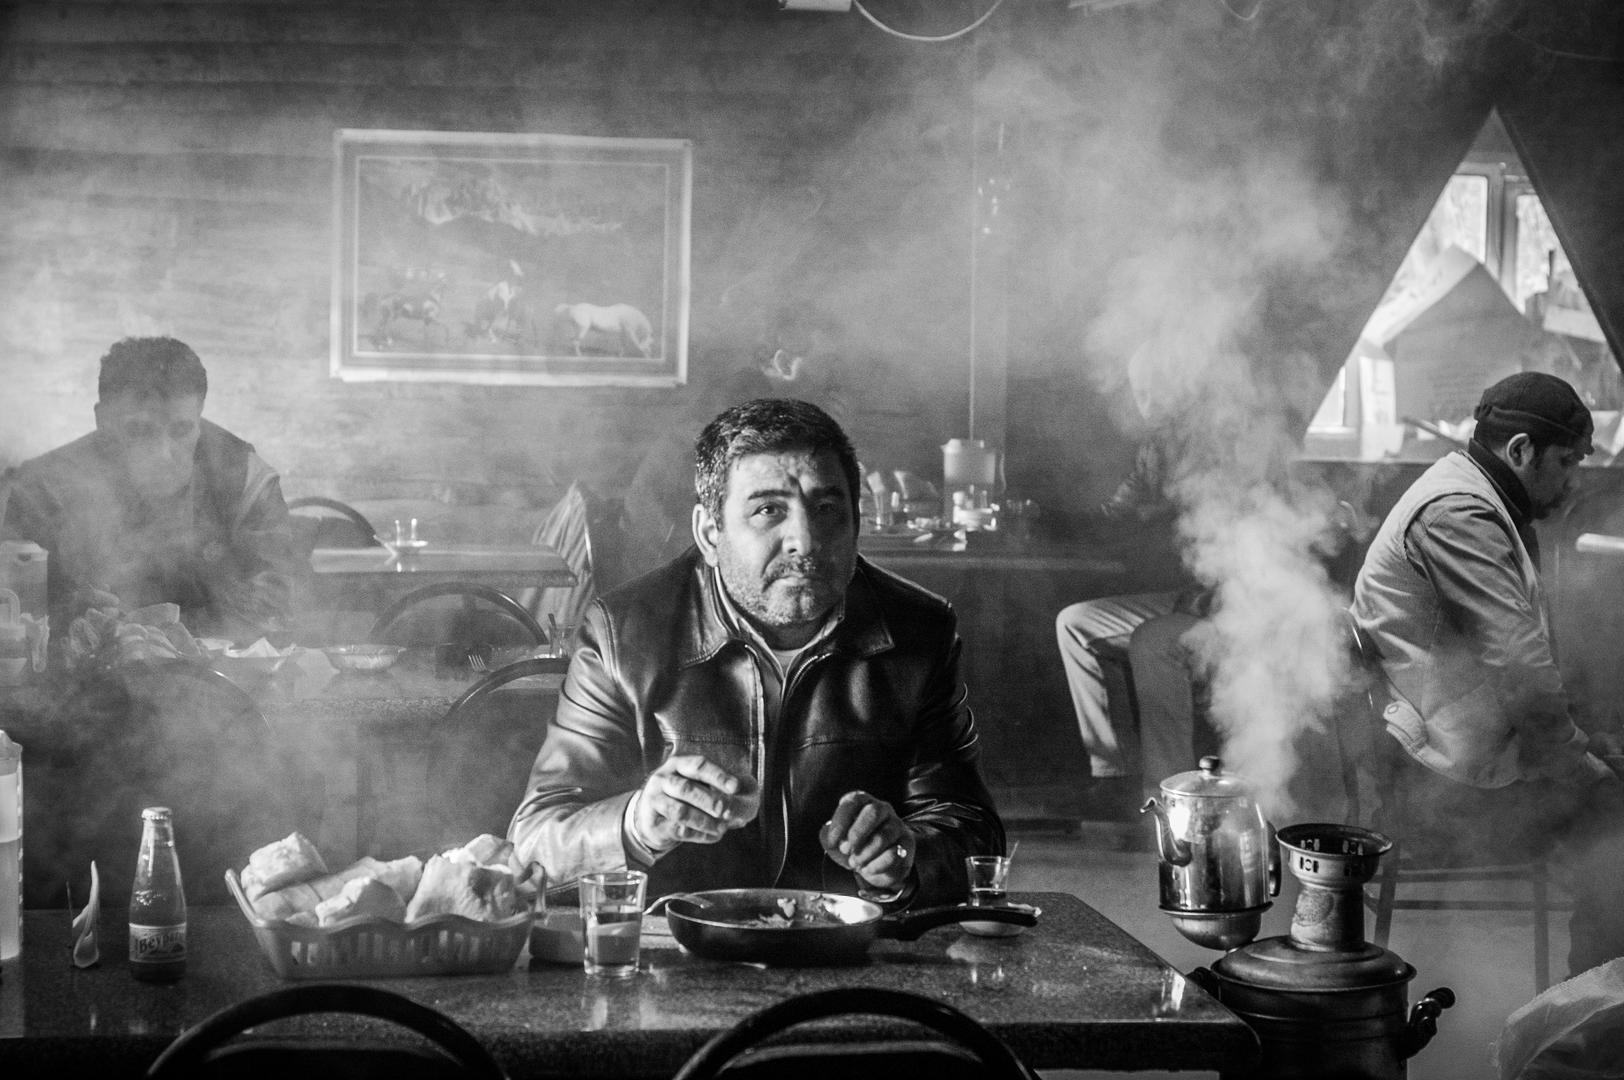 A little break to life, © Onur Ercoskun, 1st place, Digital Camera Photographer of the Year